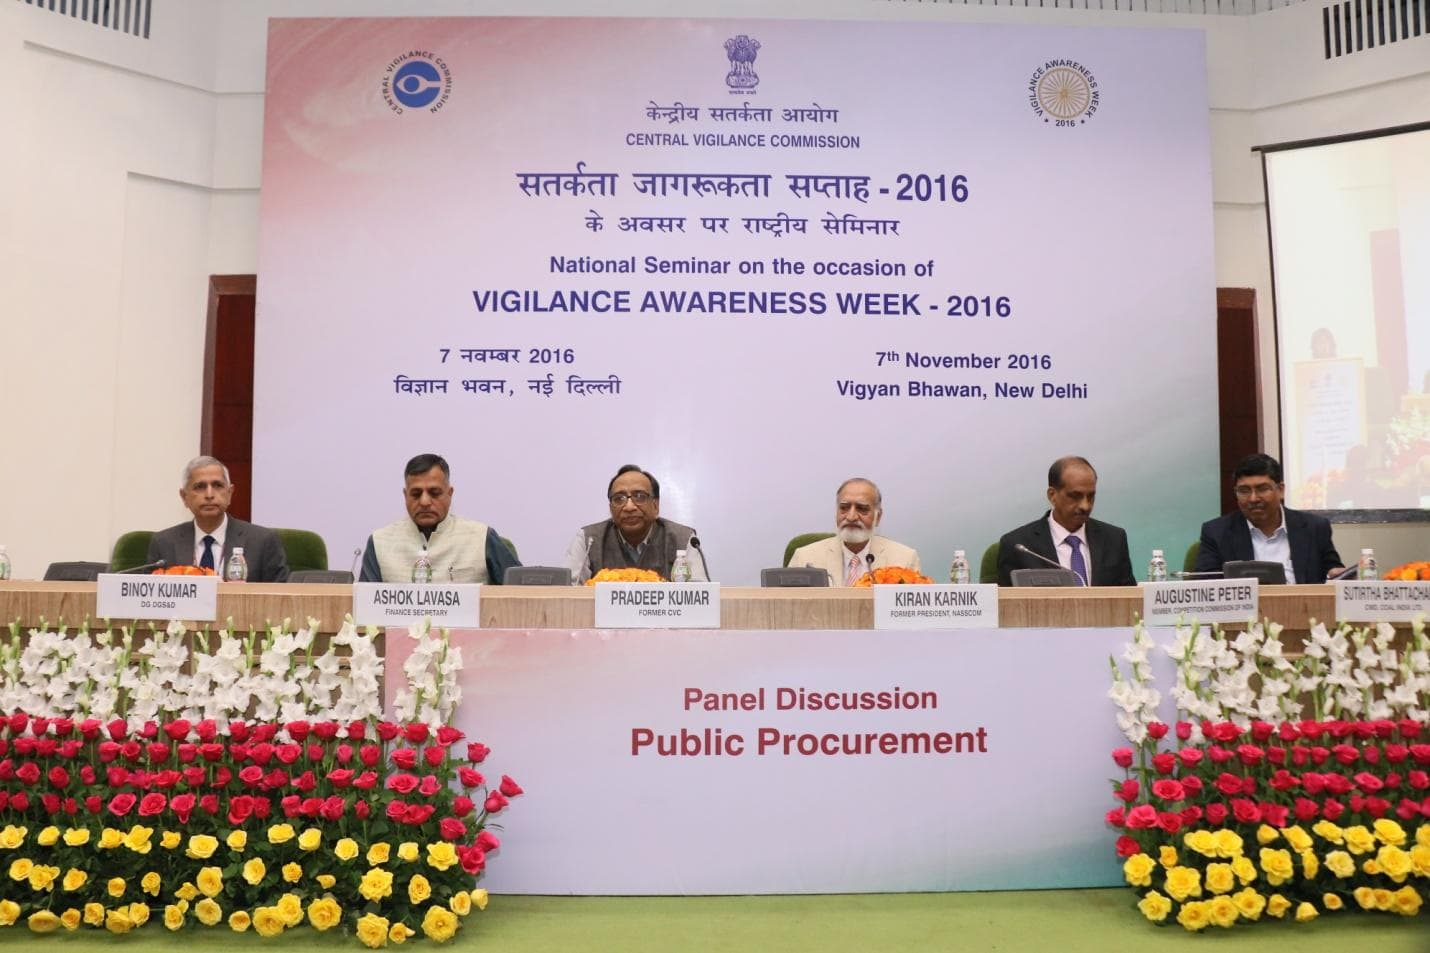 National Seminar VIGILANCE AWARENESS WEEK-2016 photo 17